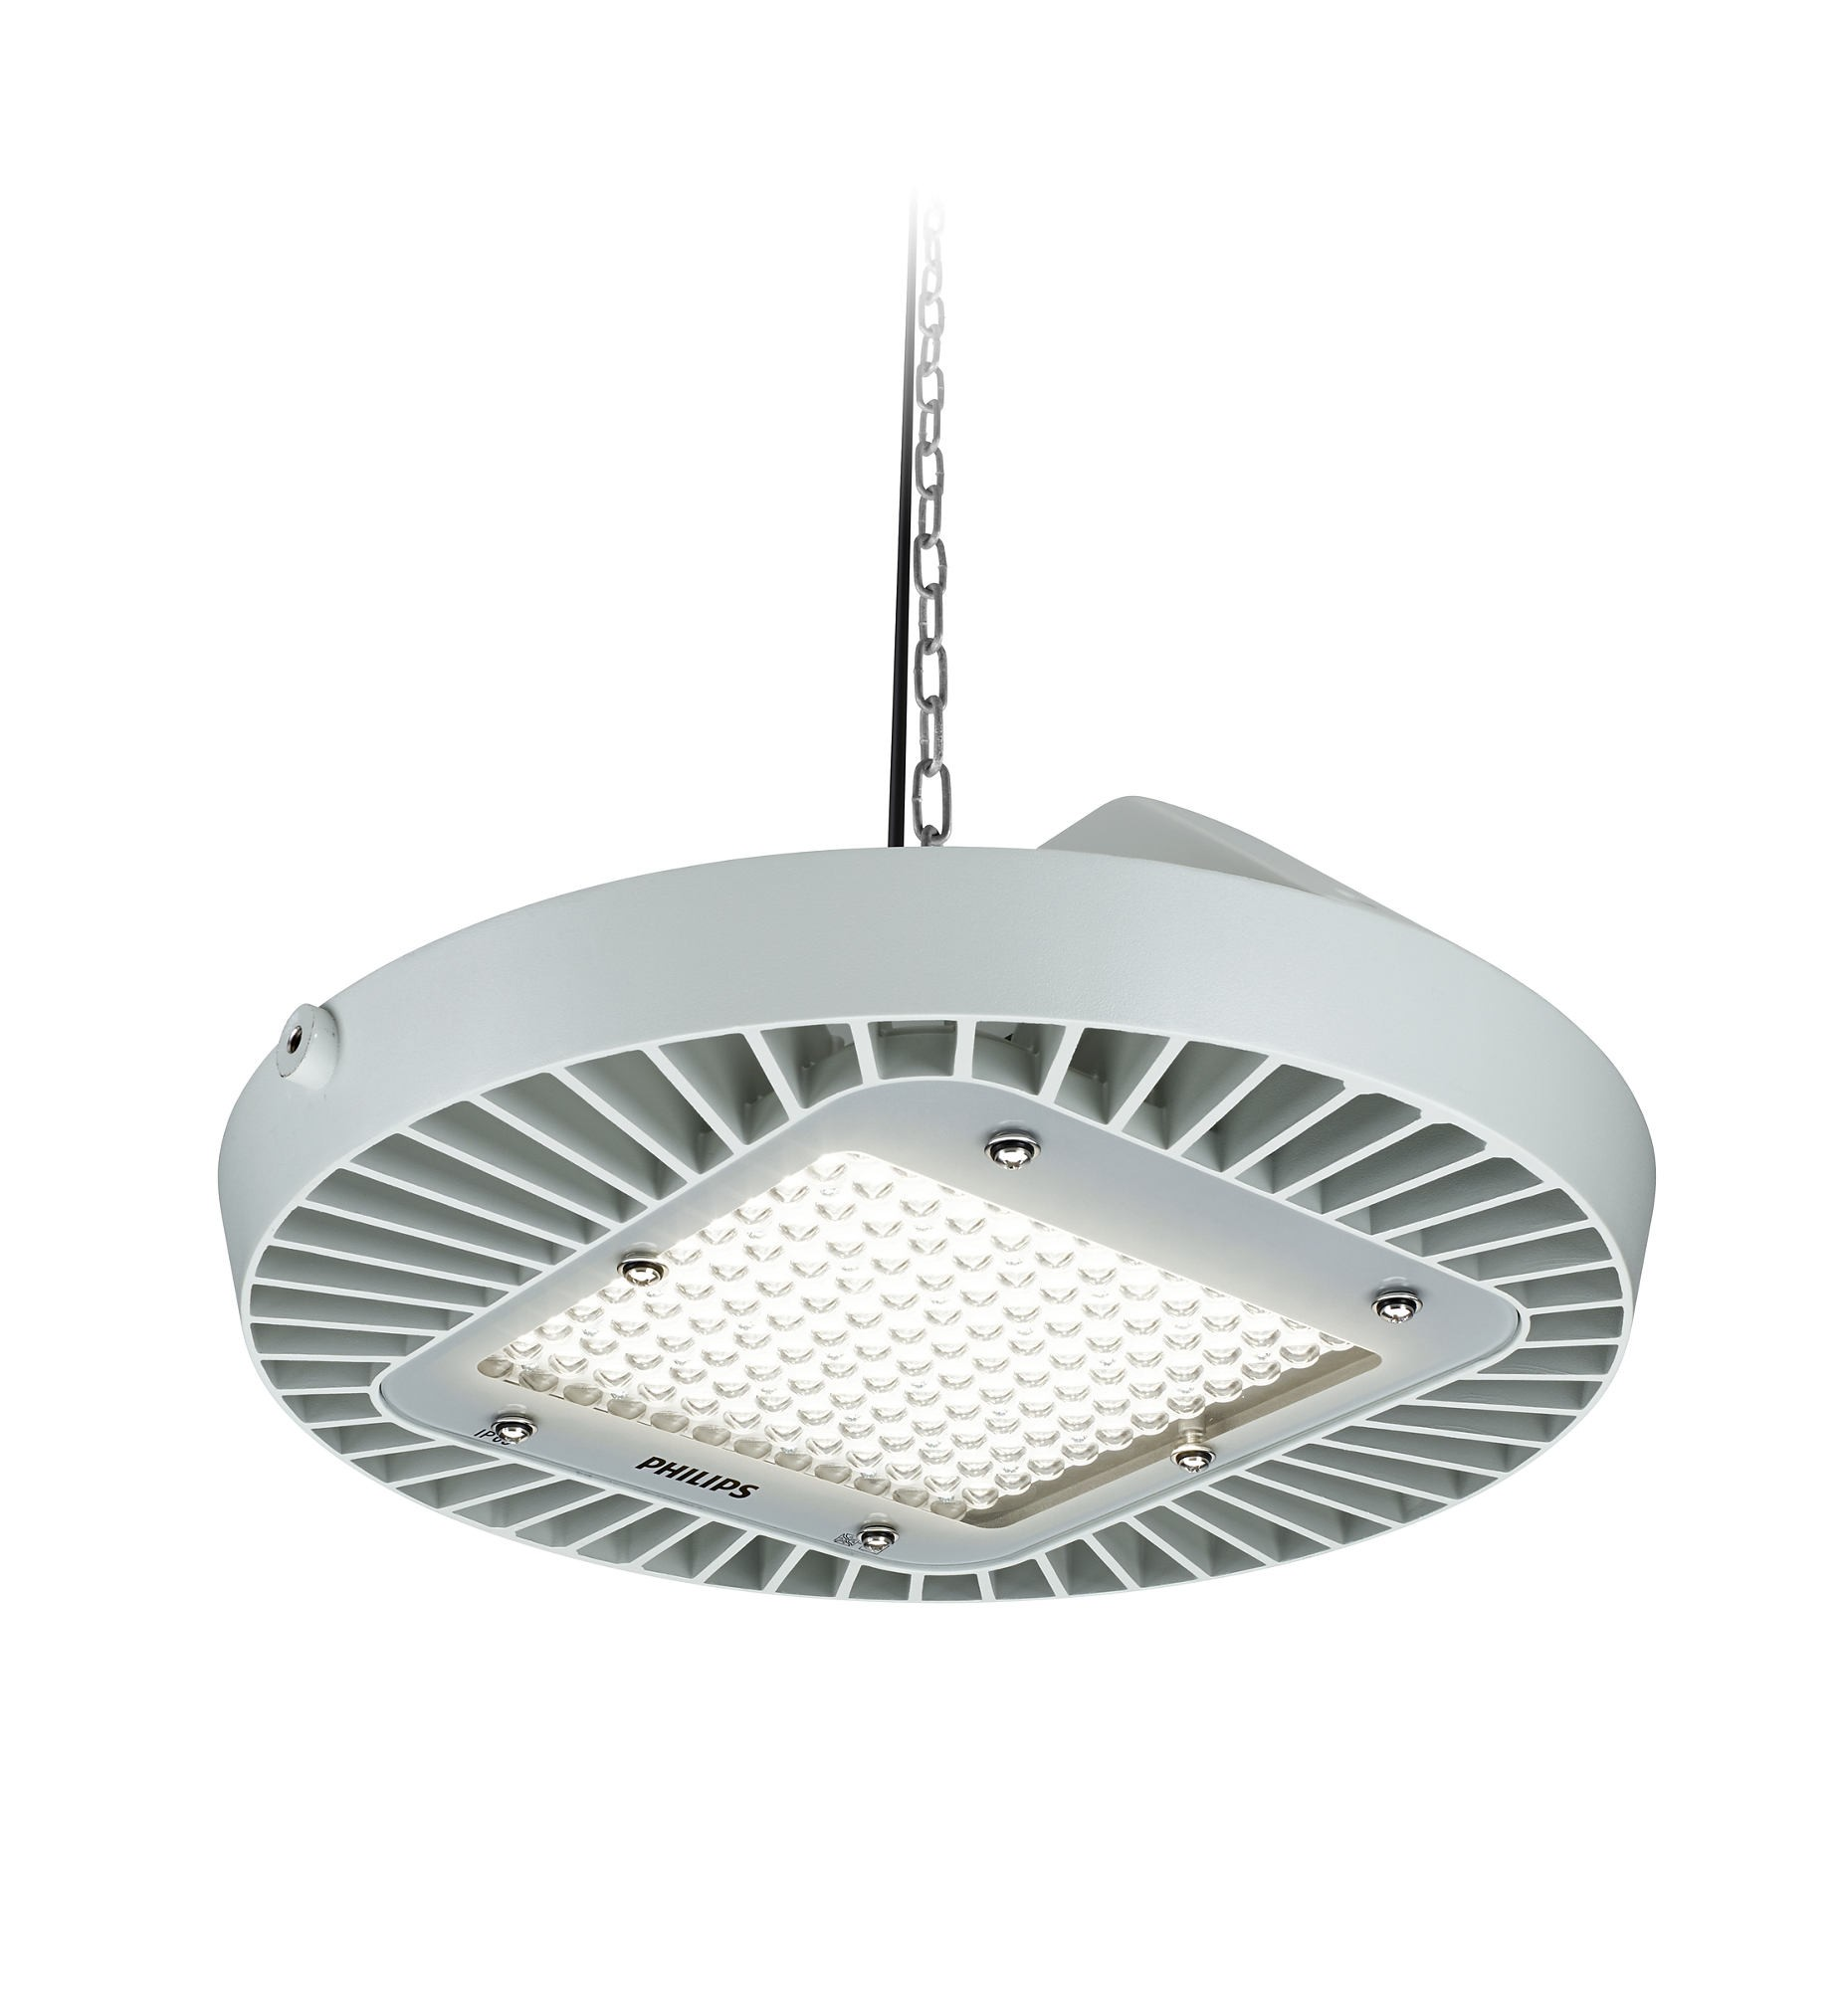 Philips BY120P G2 Coreline LED High Bay, 100W, 4000K, 10500lm